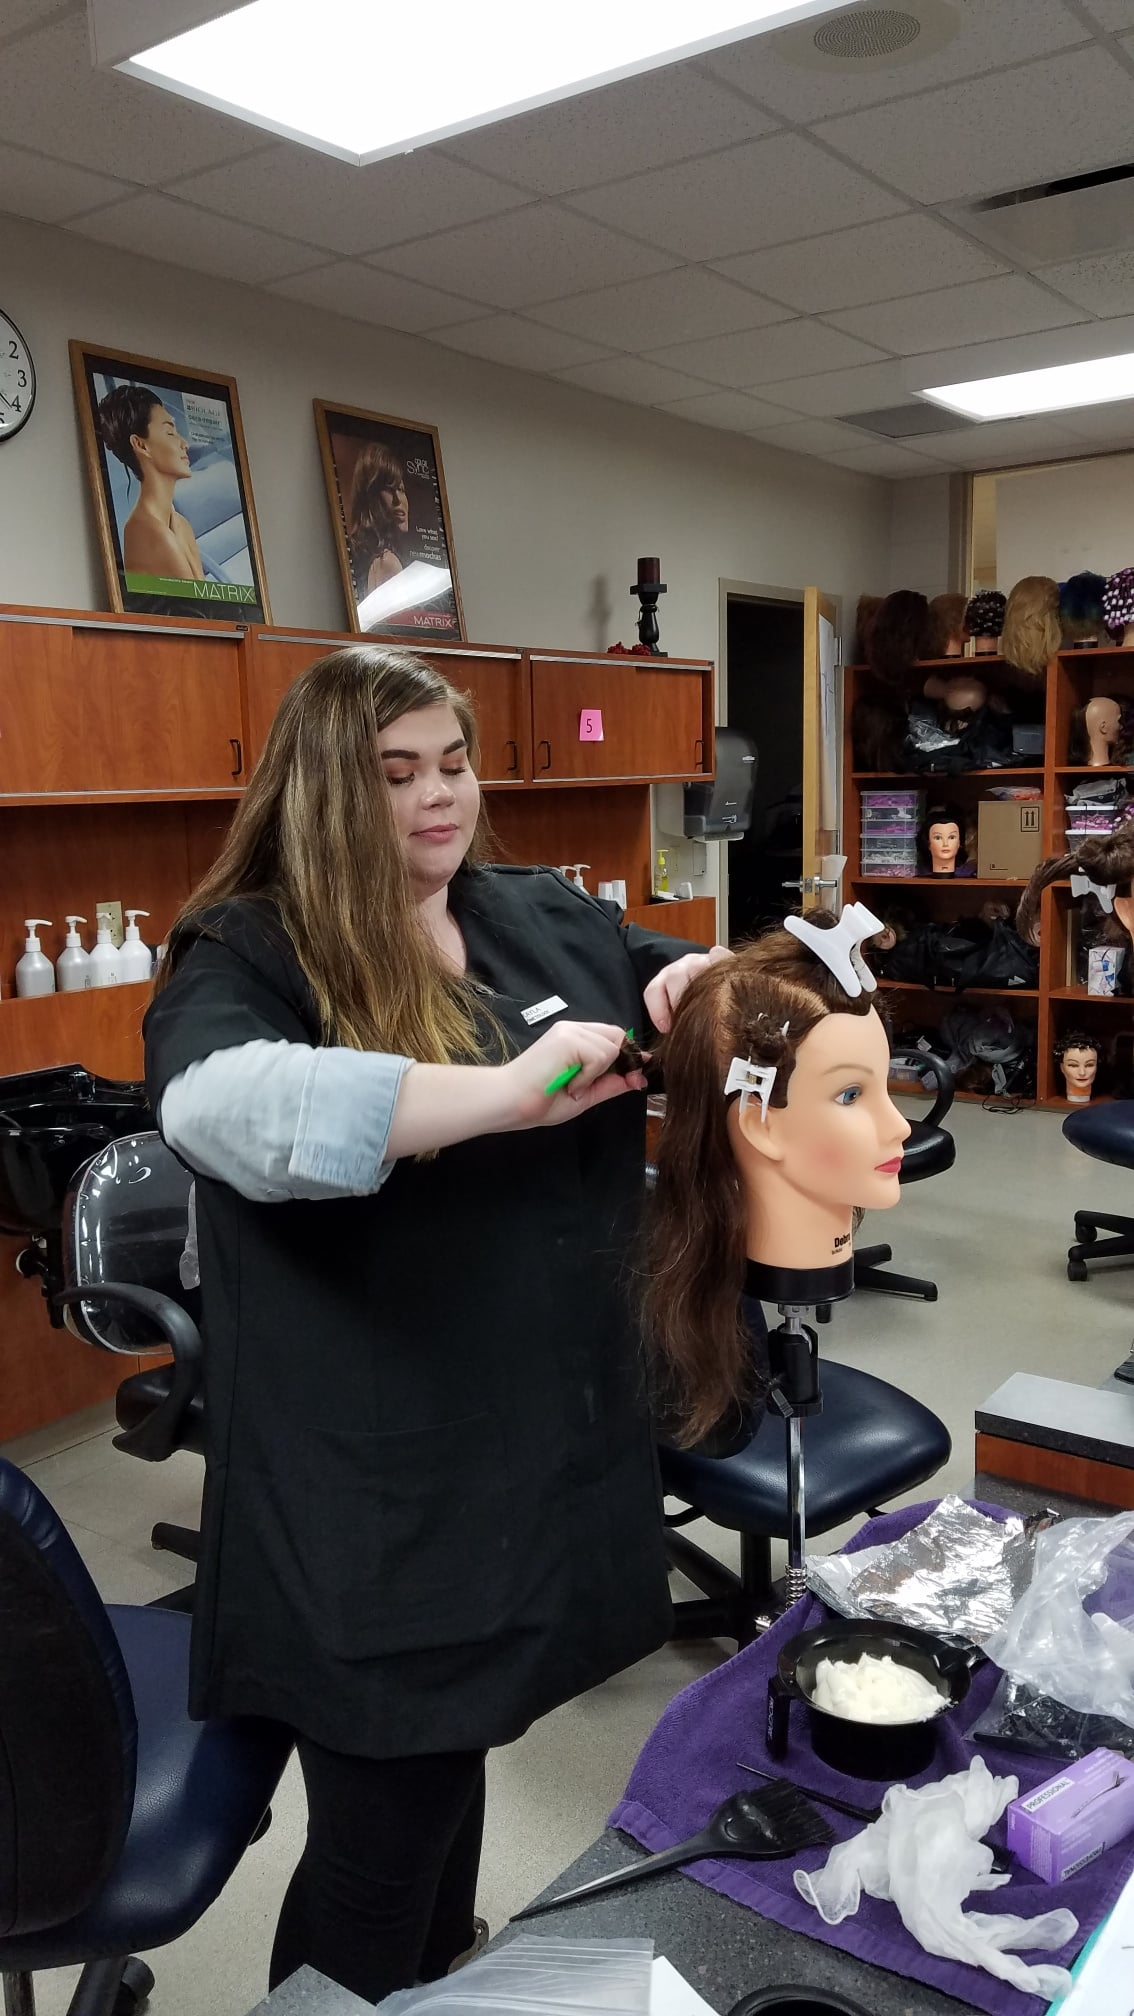 Cosmo student applying color to manikin